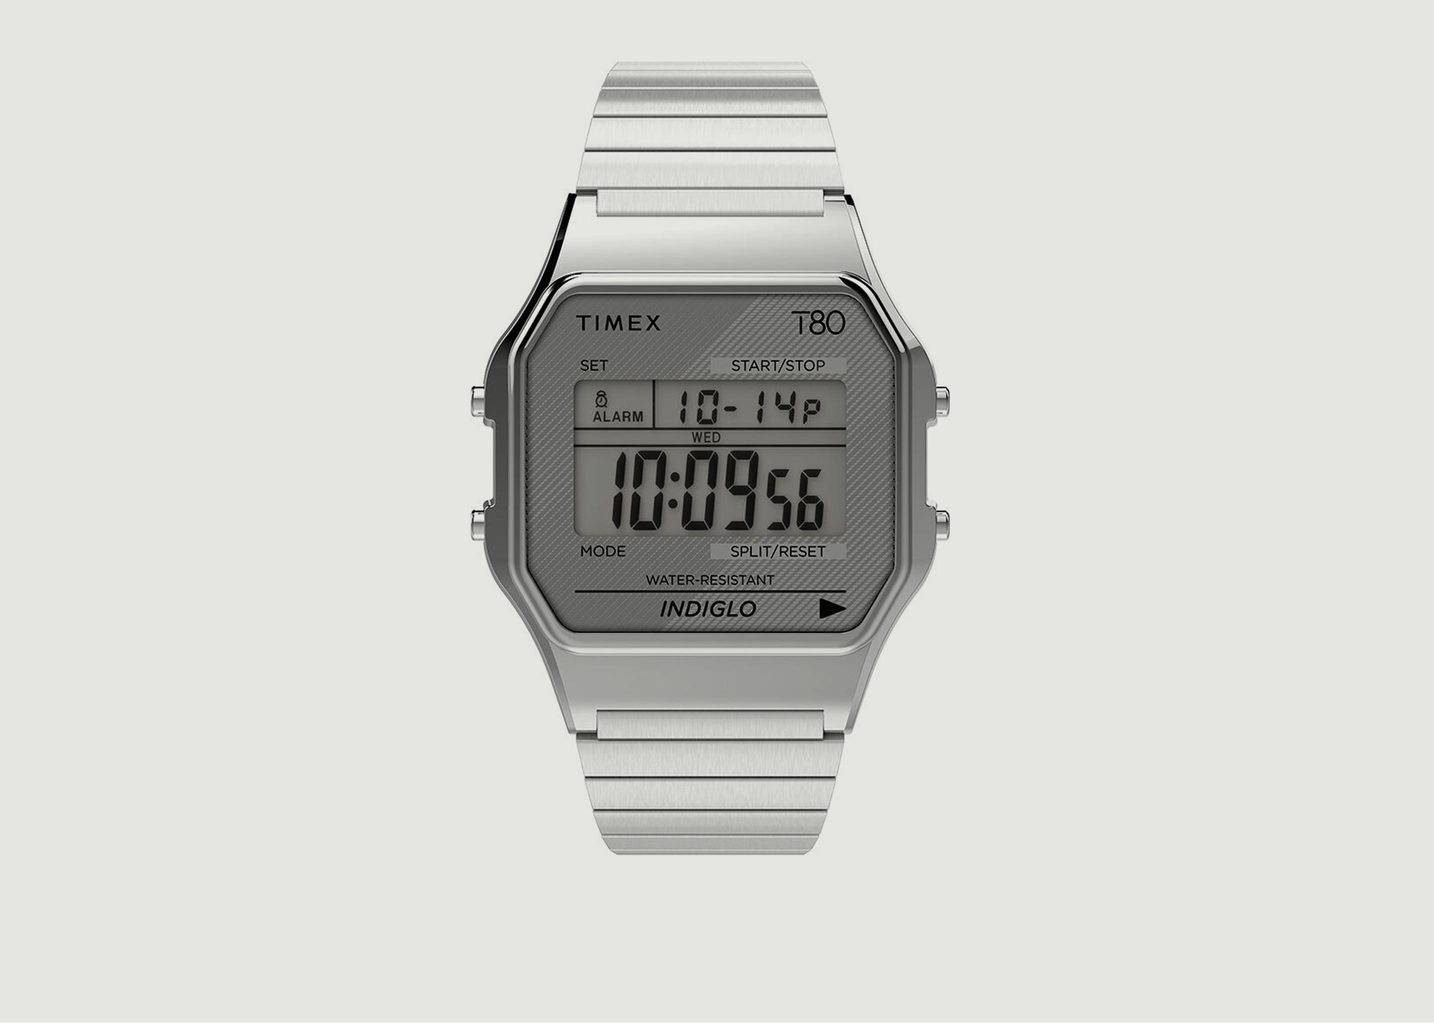 Montre T80 34mm Silver - Timex Archive